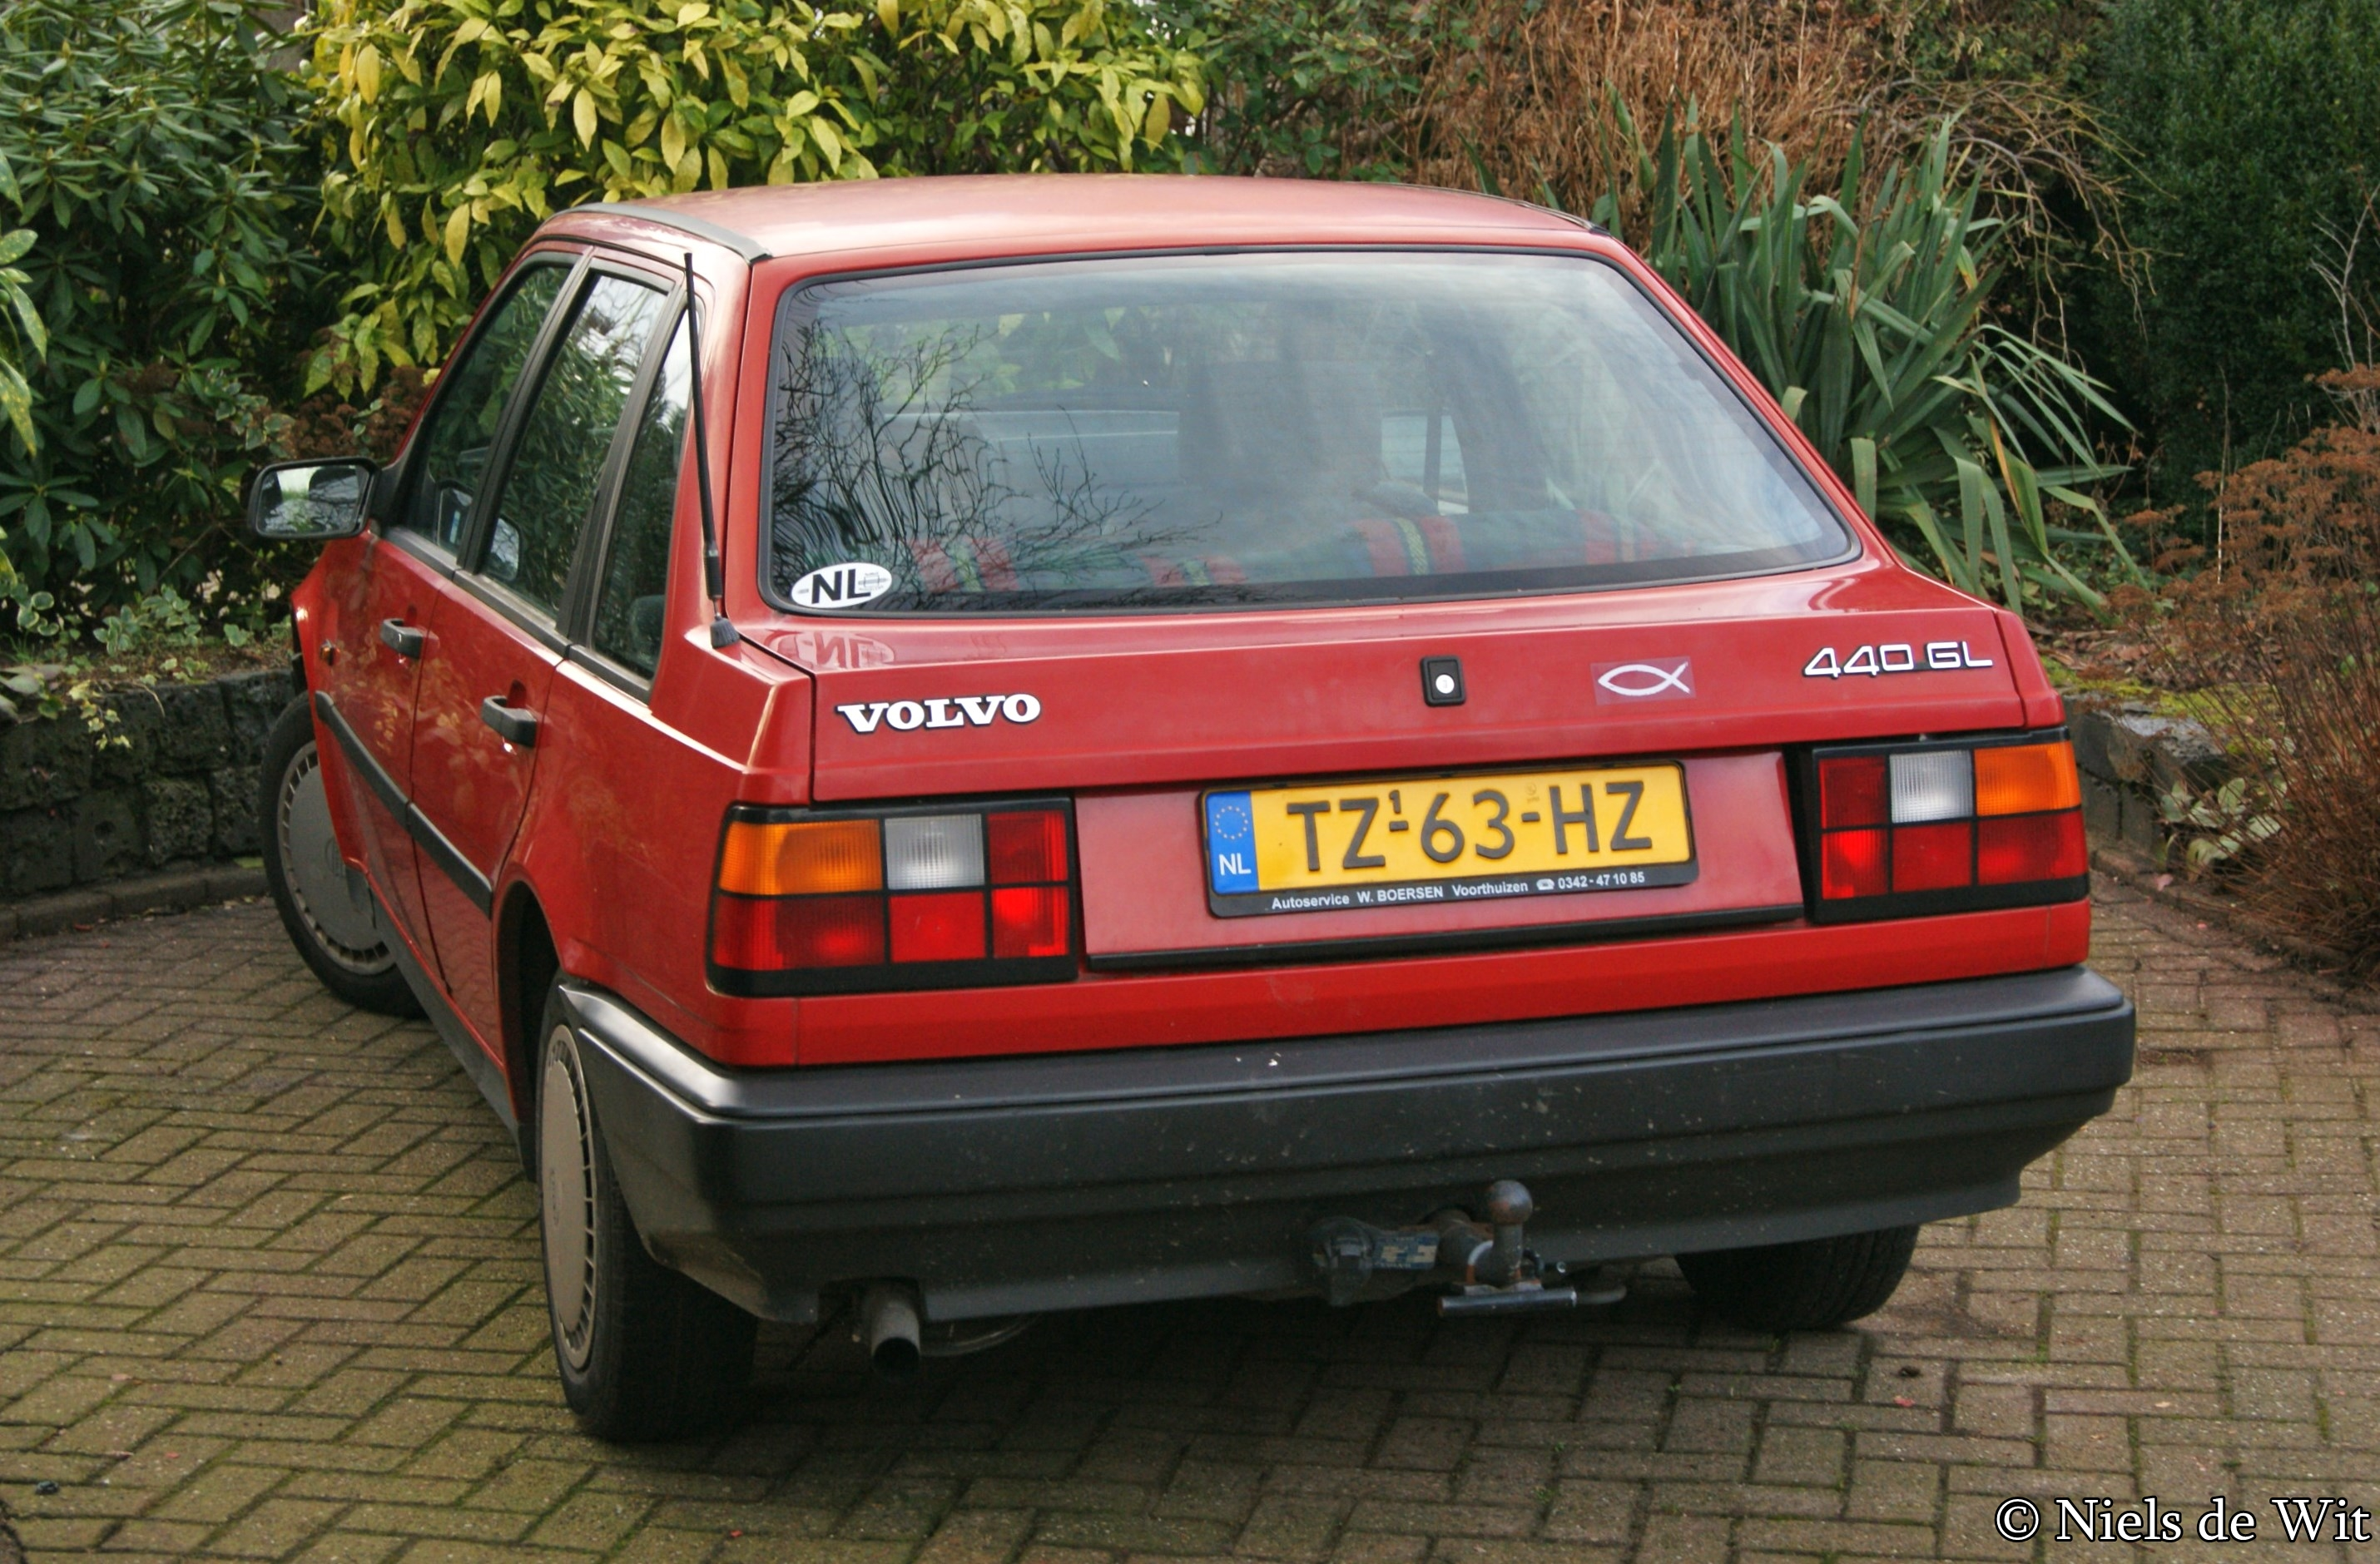 Pre facelift Volvo 440 GL (the Netherlands)